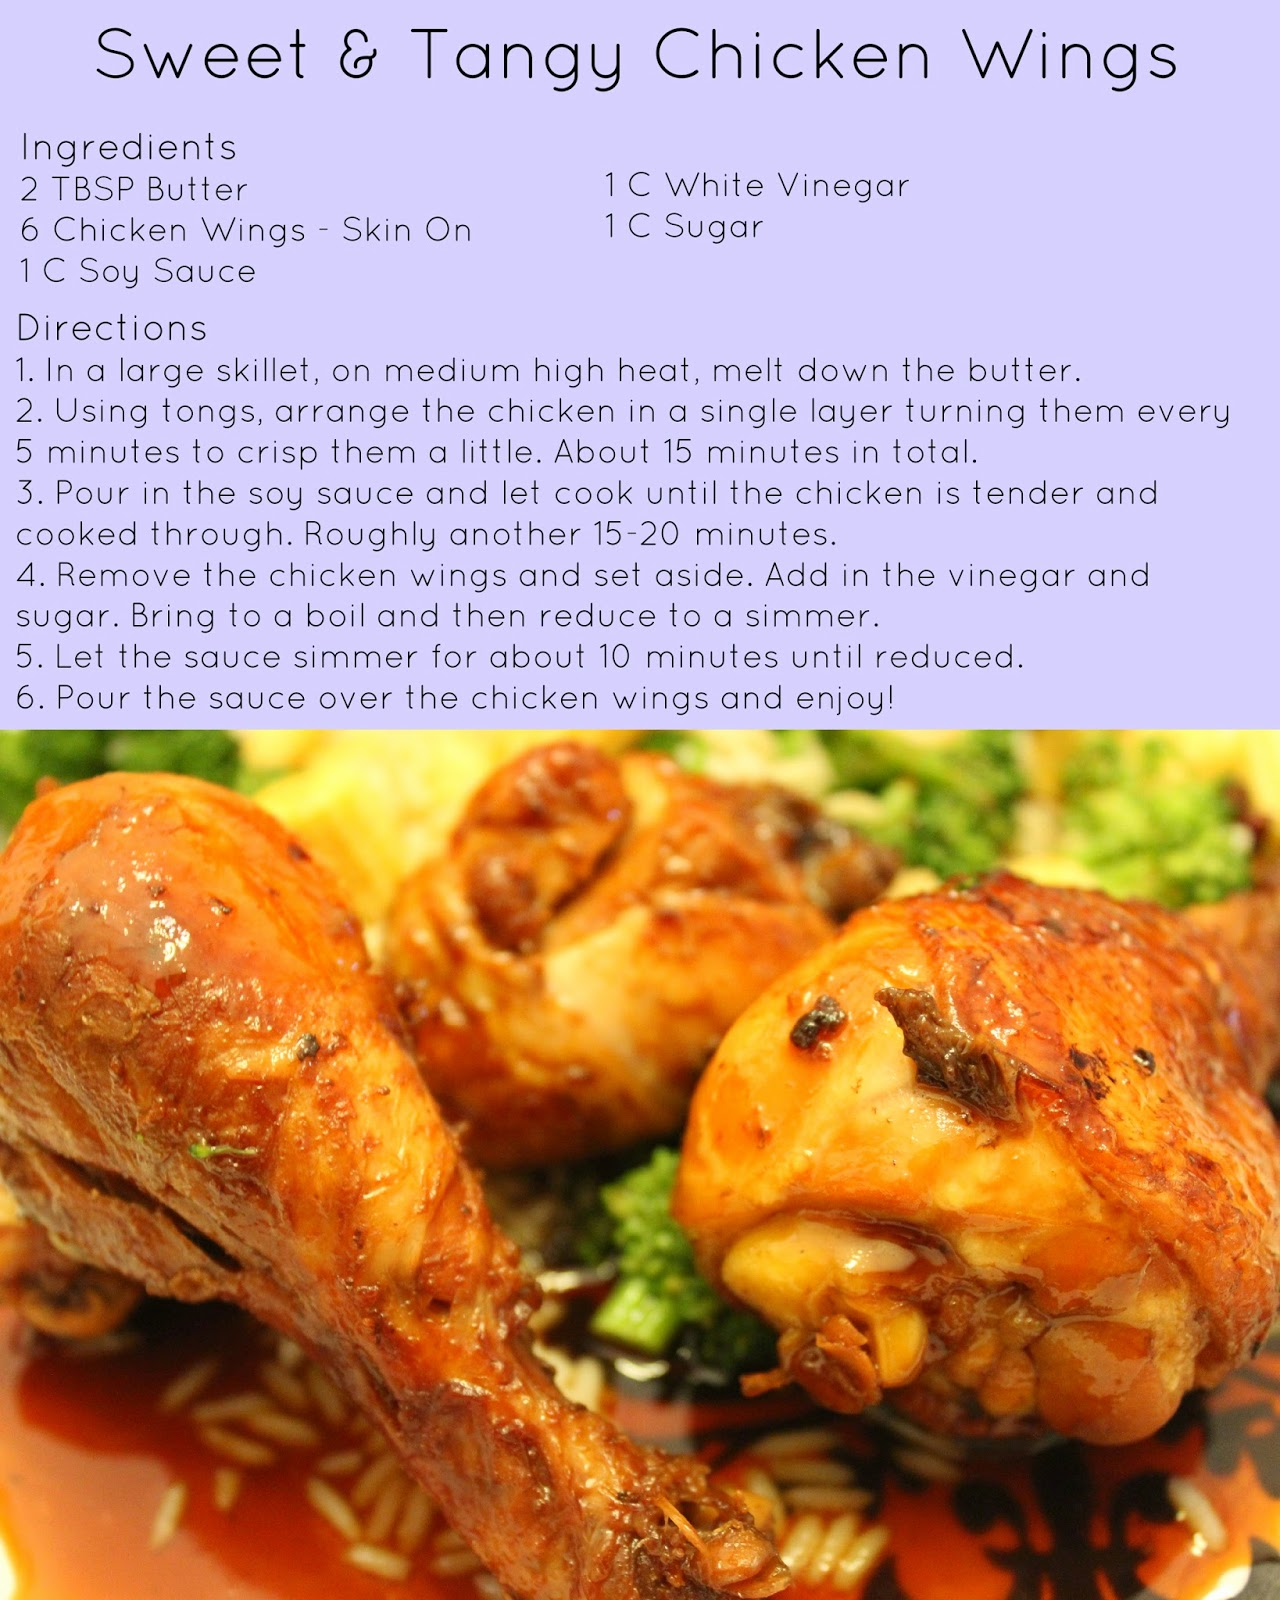 tasty tuesday, recipes, chicken wings, sweet and tangy, chicken wing recipe, asian inspired, Philippine inspired, soy sauce, vinegar, veggie rice, broccoli, baby corn, rice, white rice